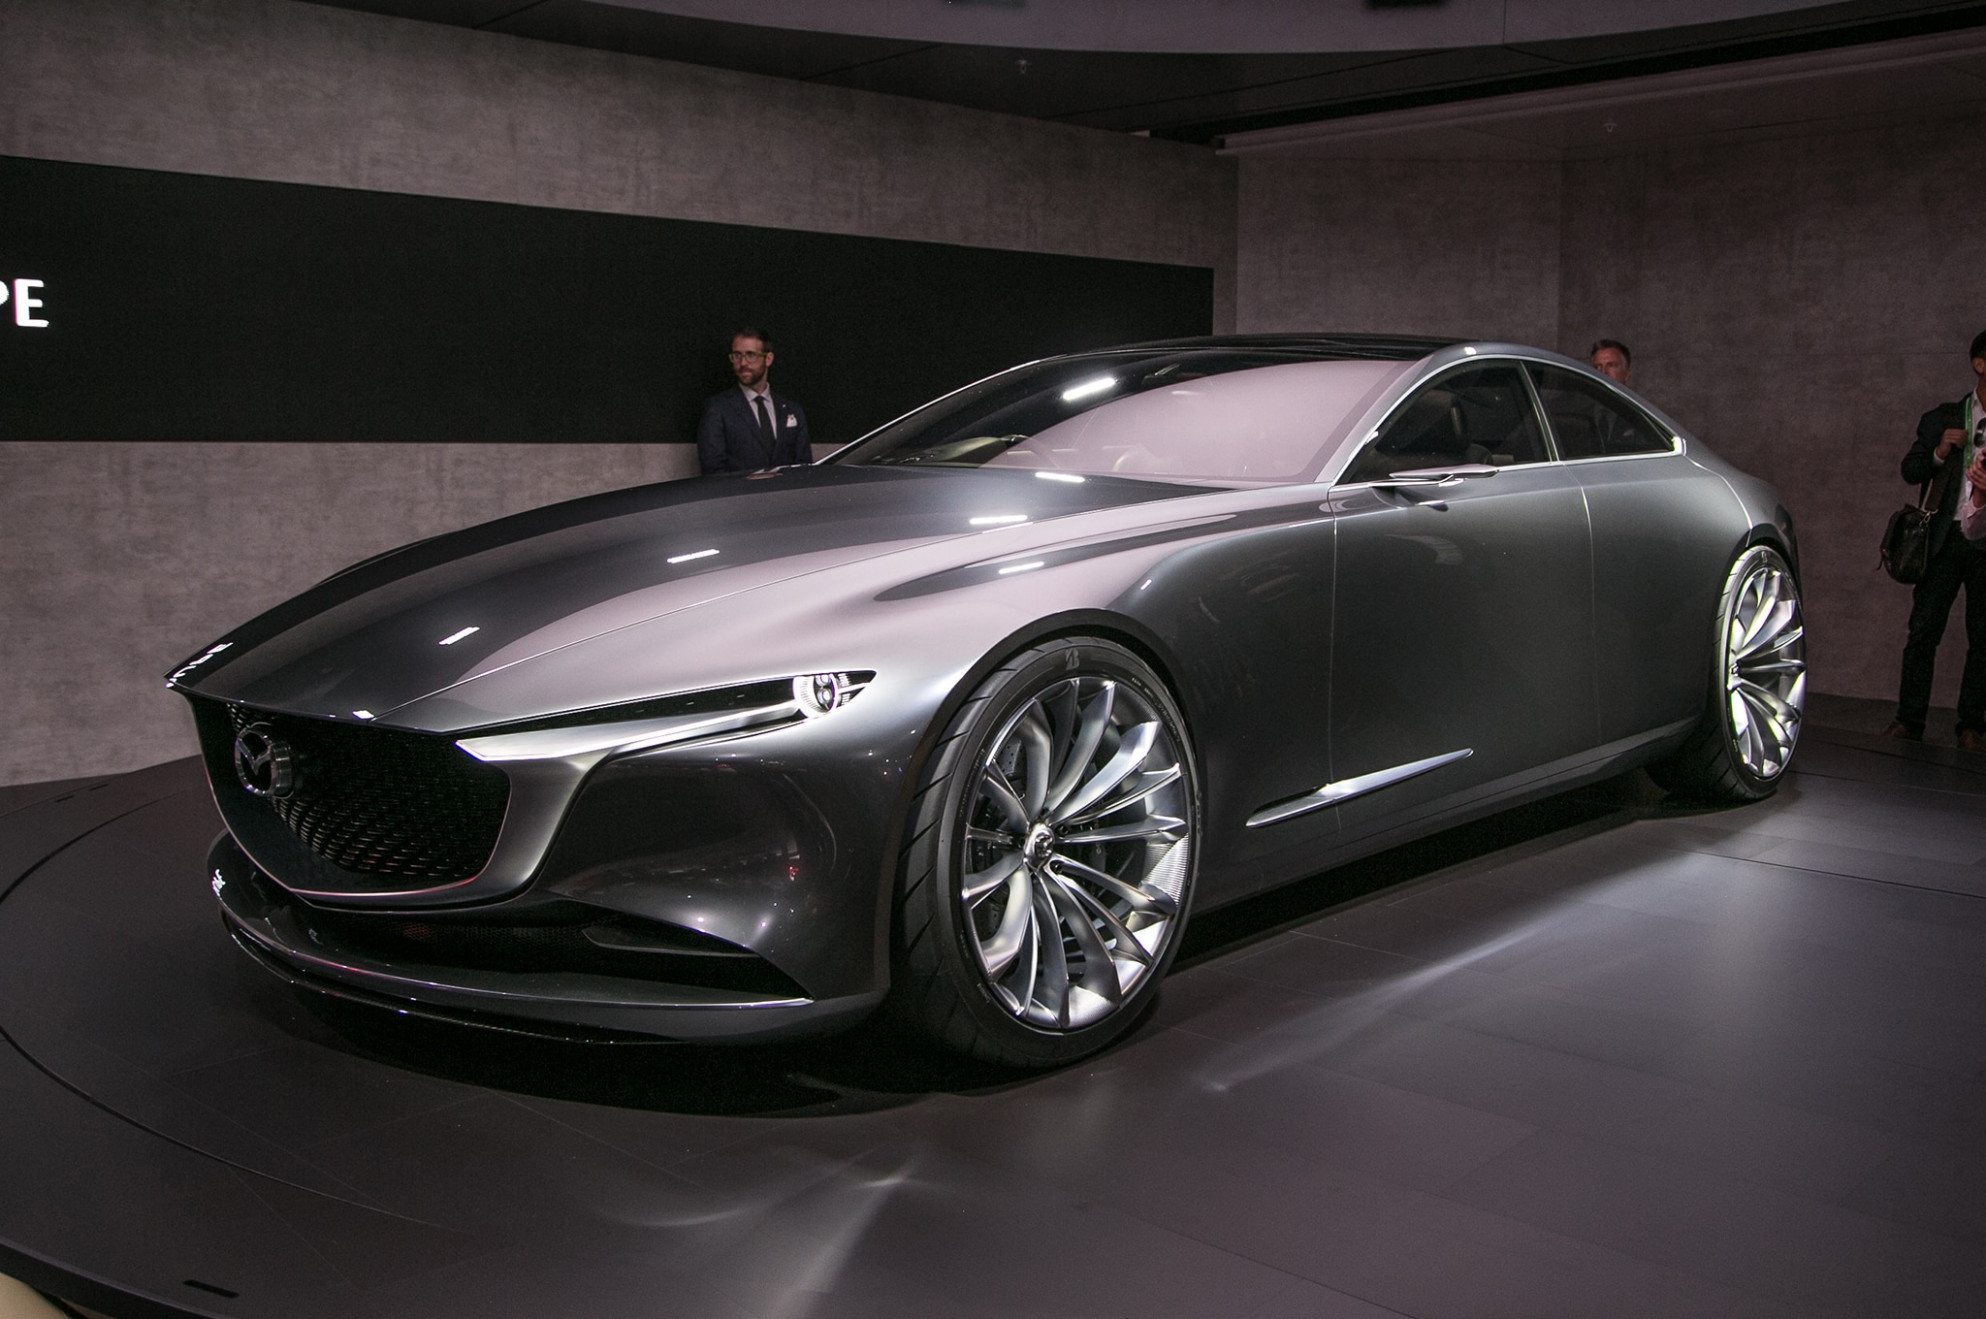 Price When Is The 2022 Mazda 6 Coming Out